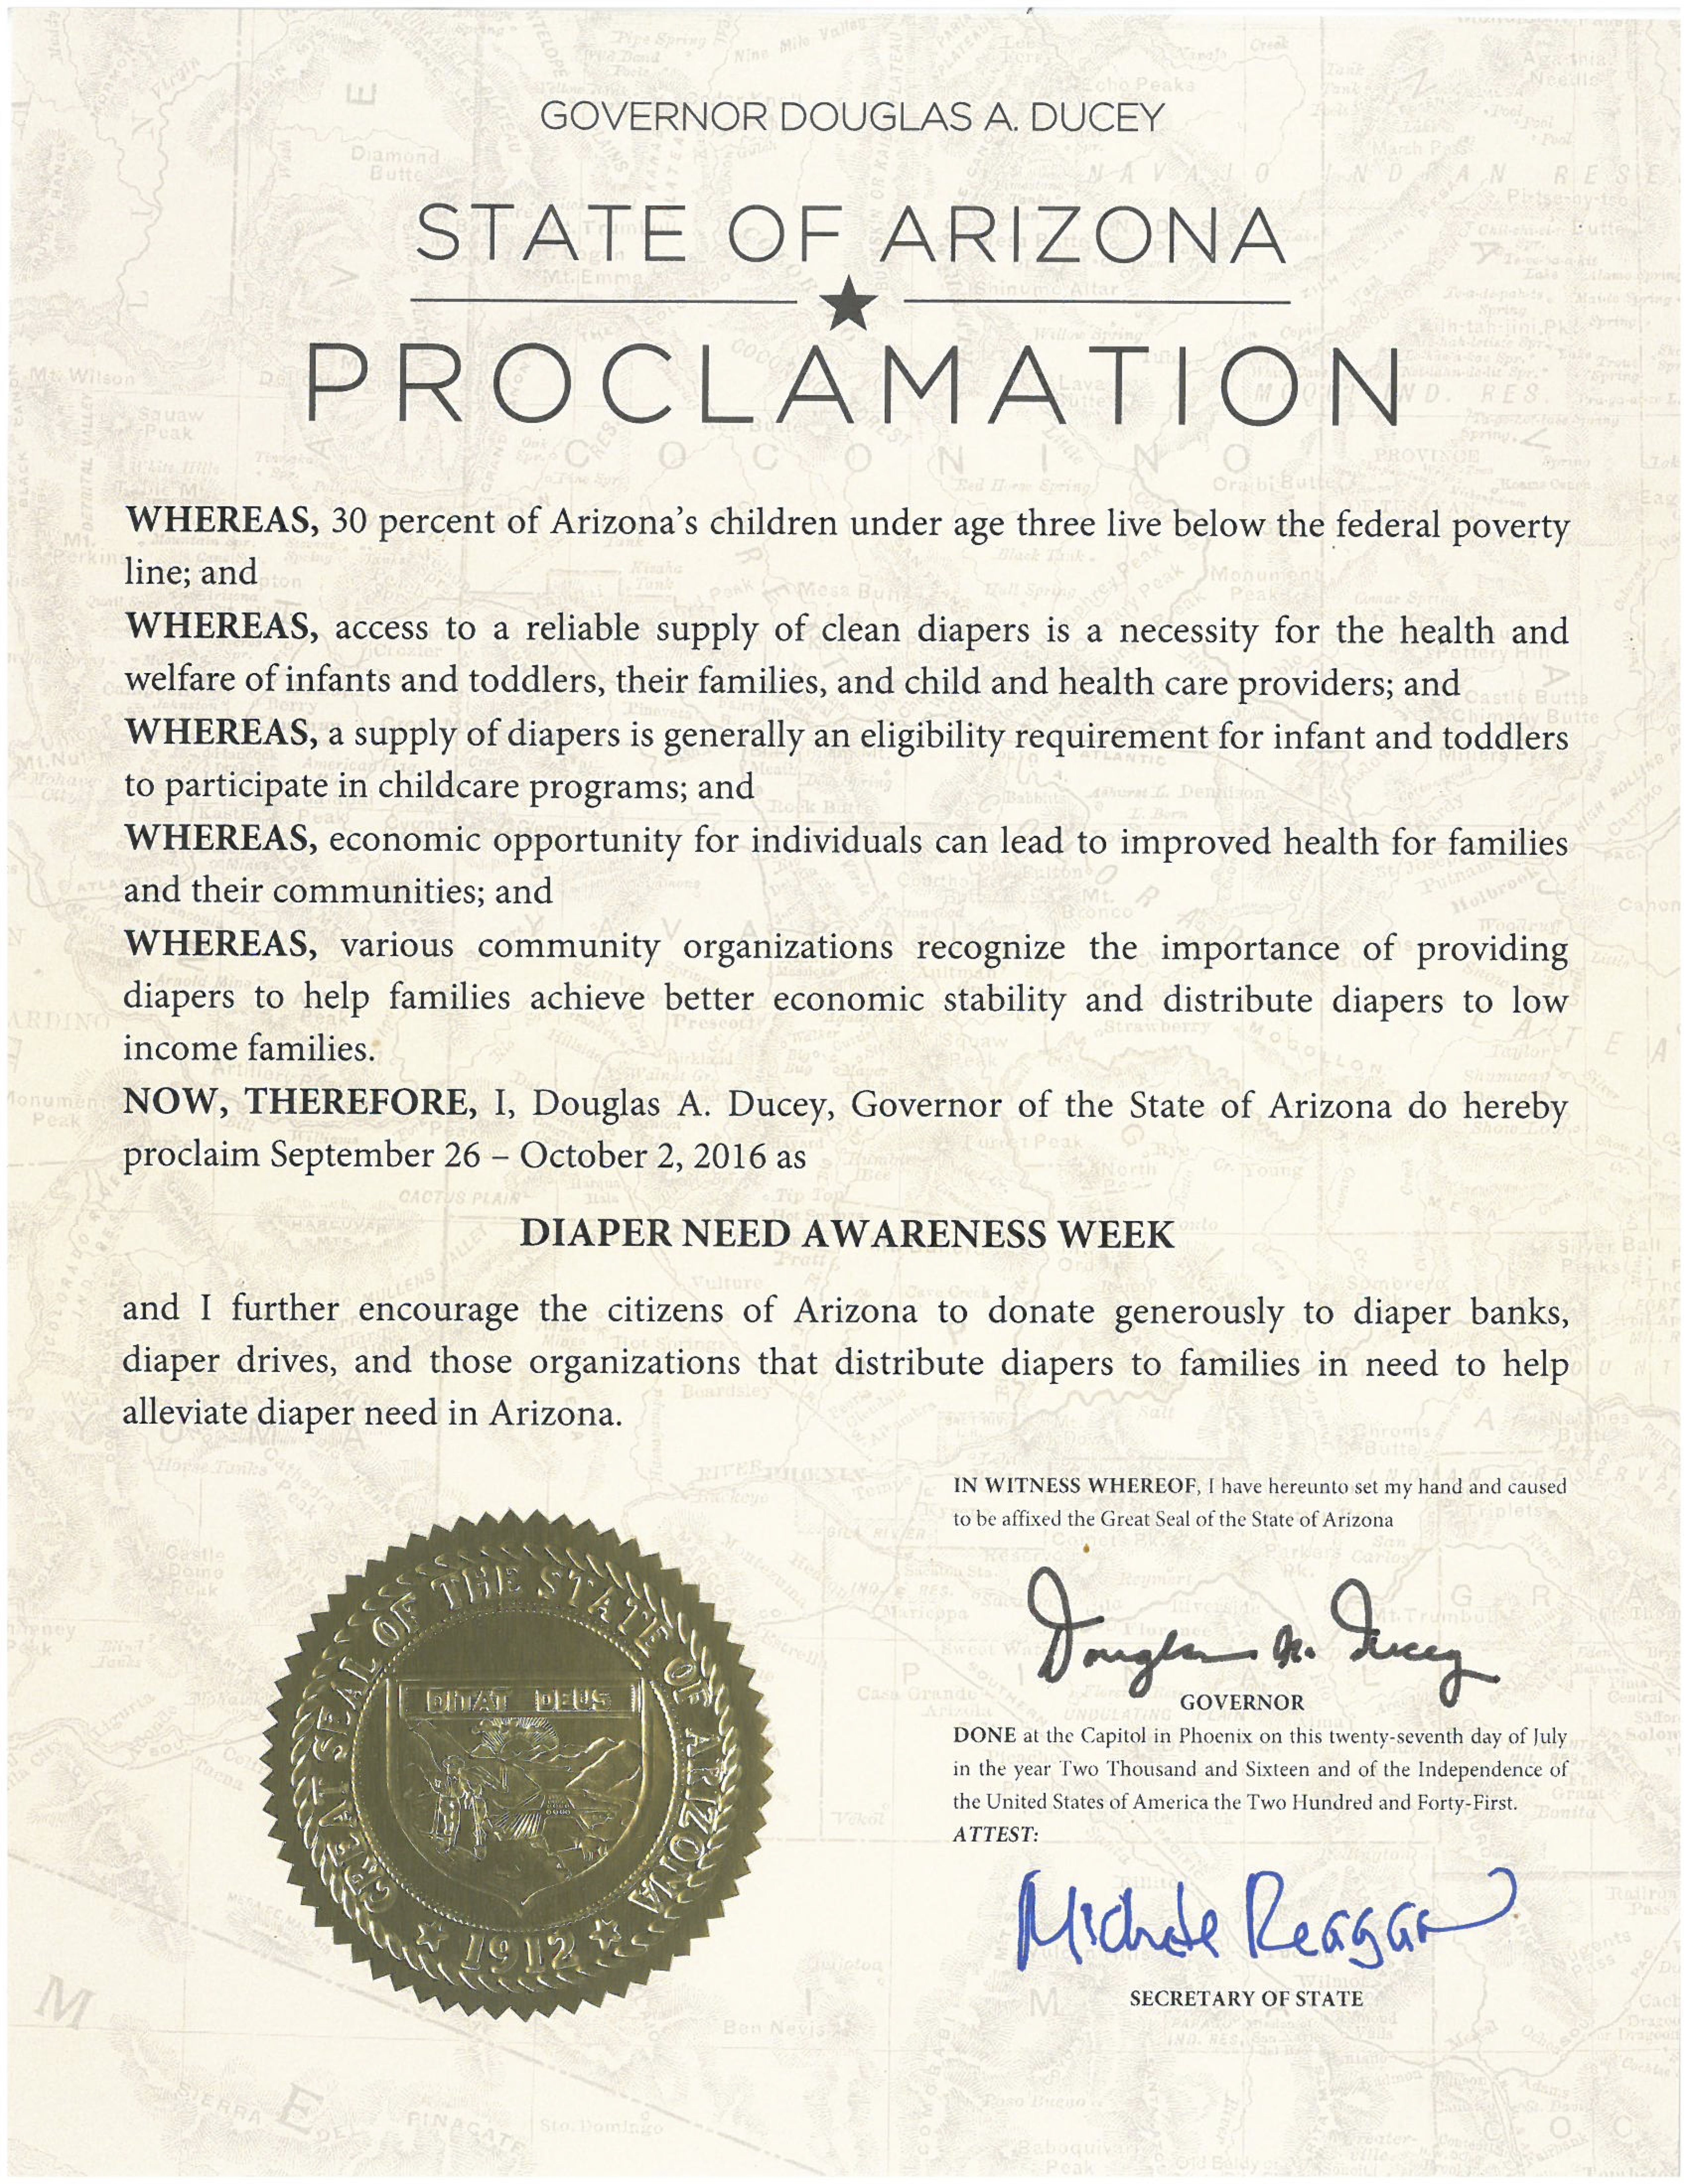 ARIZONA - Governor Doug Ducey's proclamation recognizing Diaper Need Awareness Week (Sep. 26 - Oct. 2, 2016) #diaperneed diaperneed.org